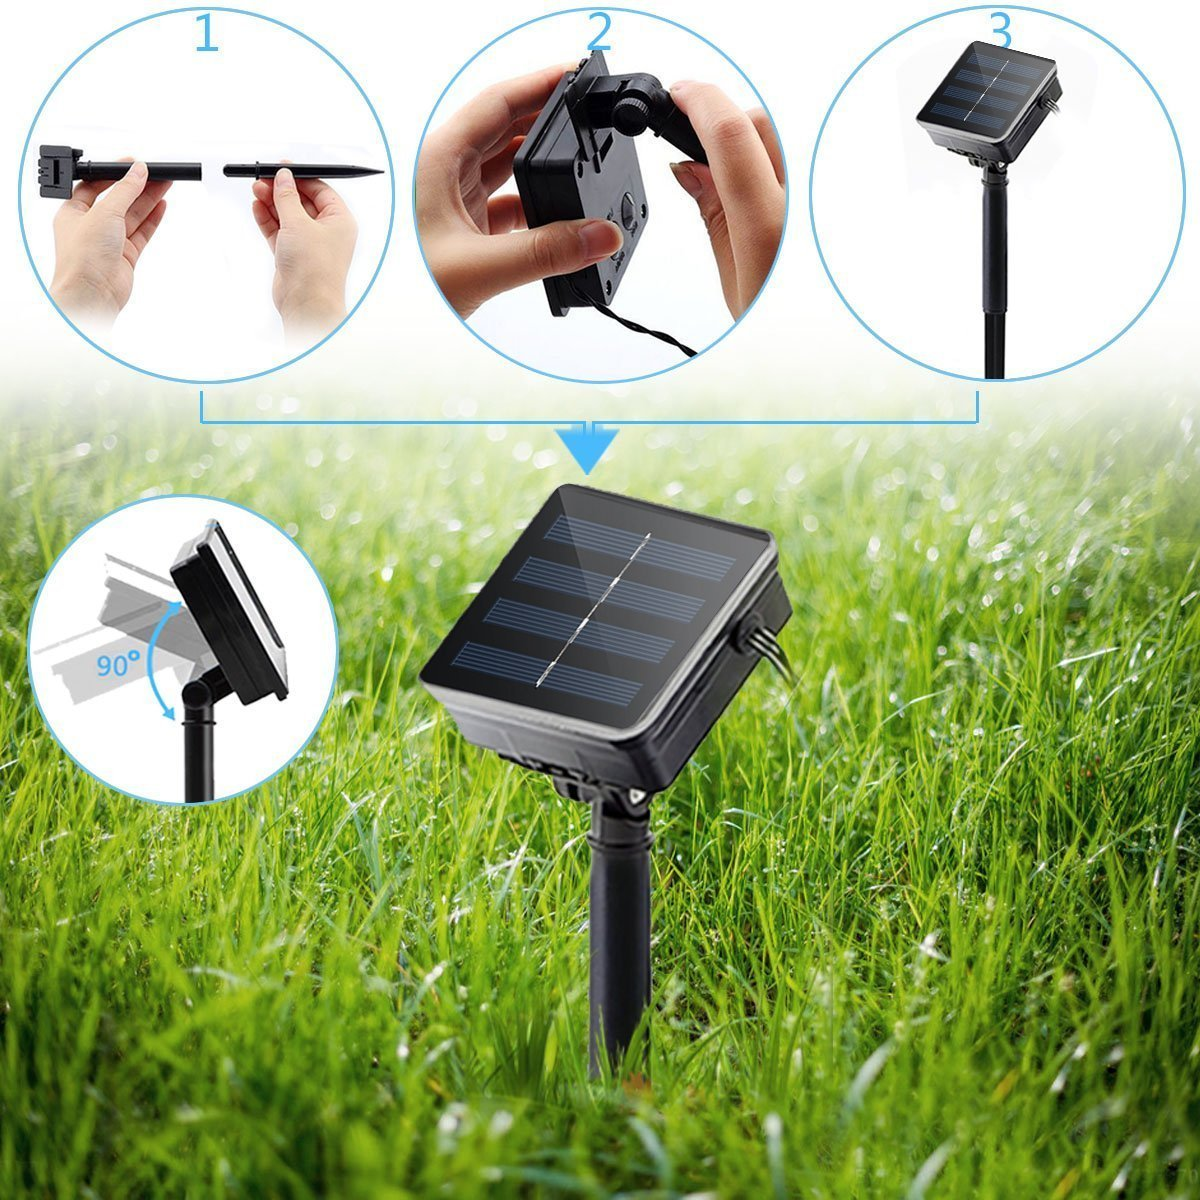 solar powered garden lighting strips